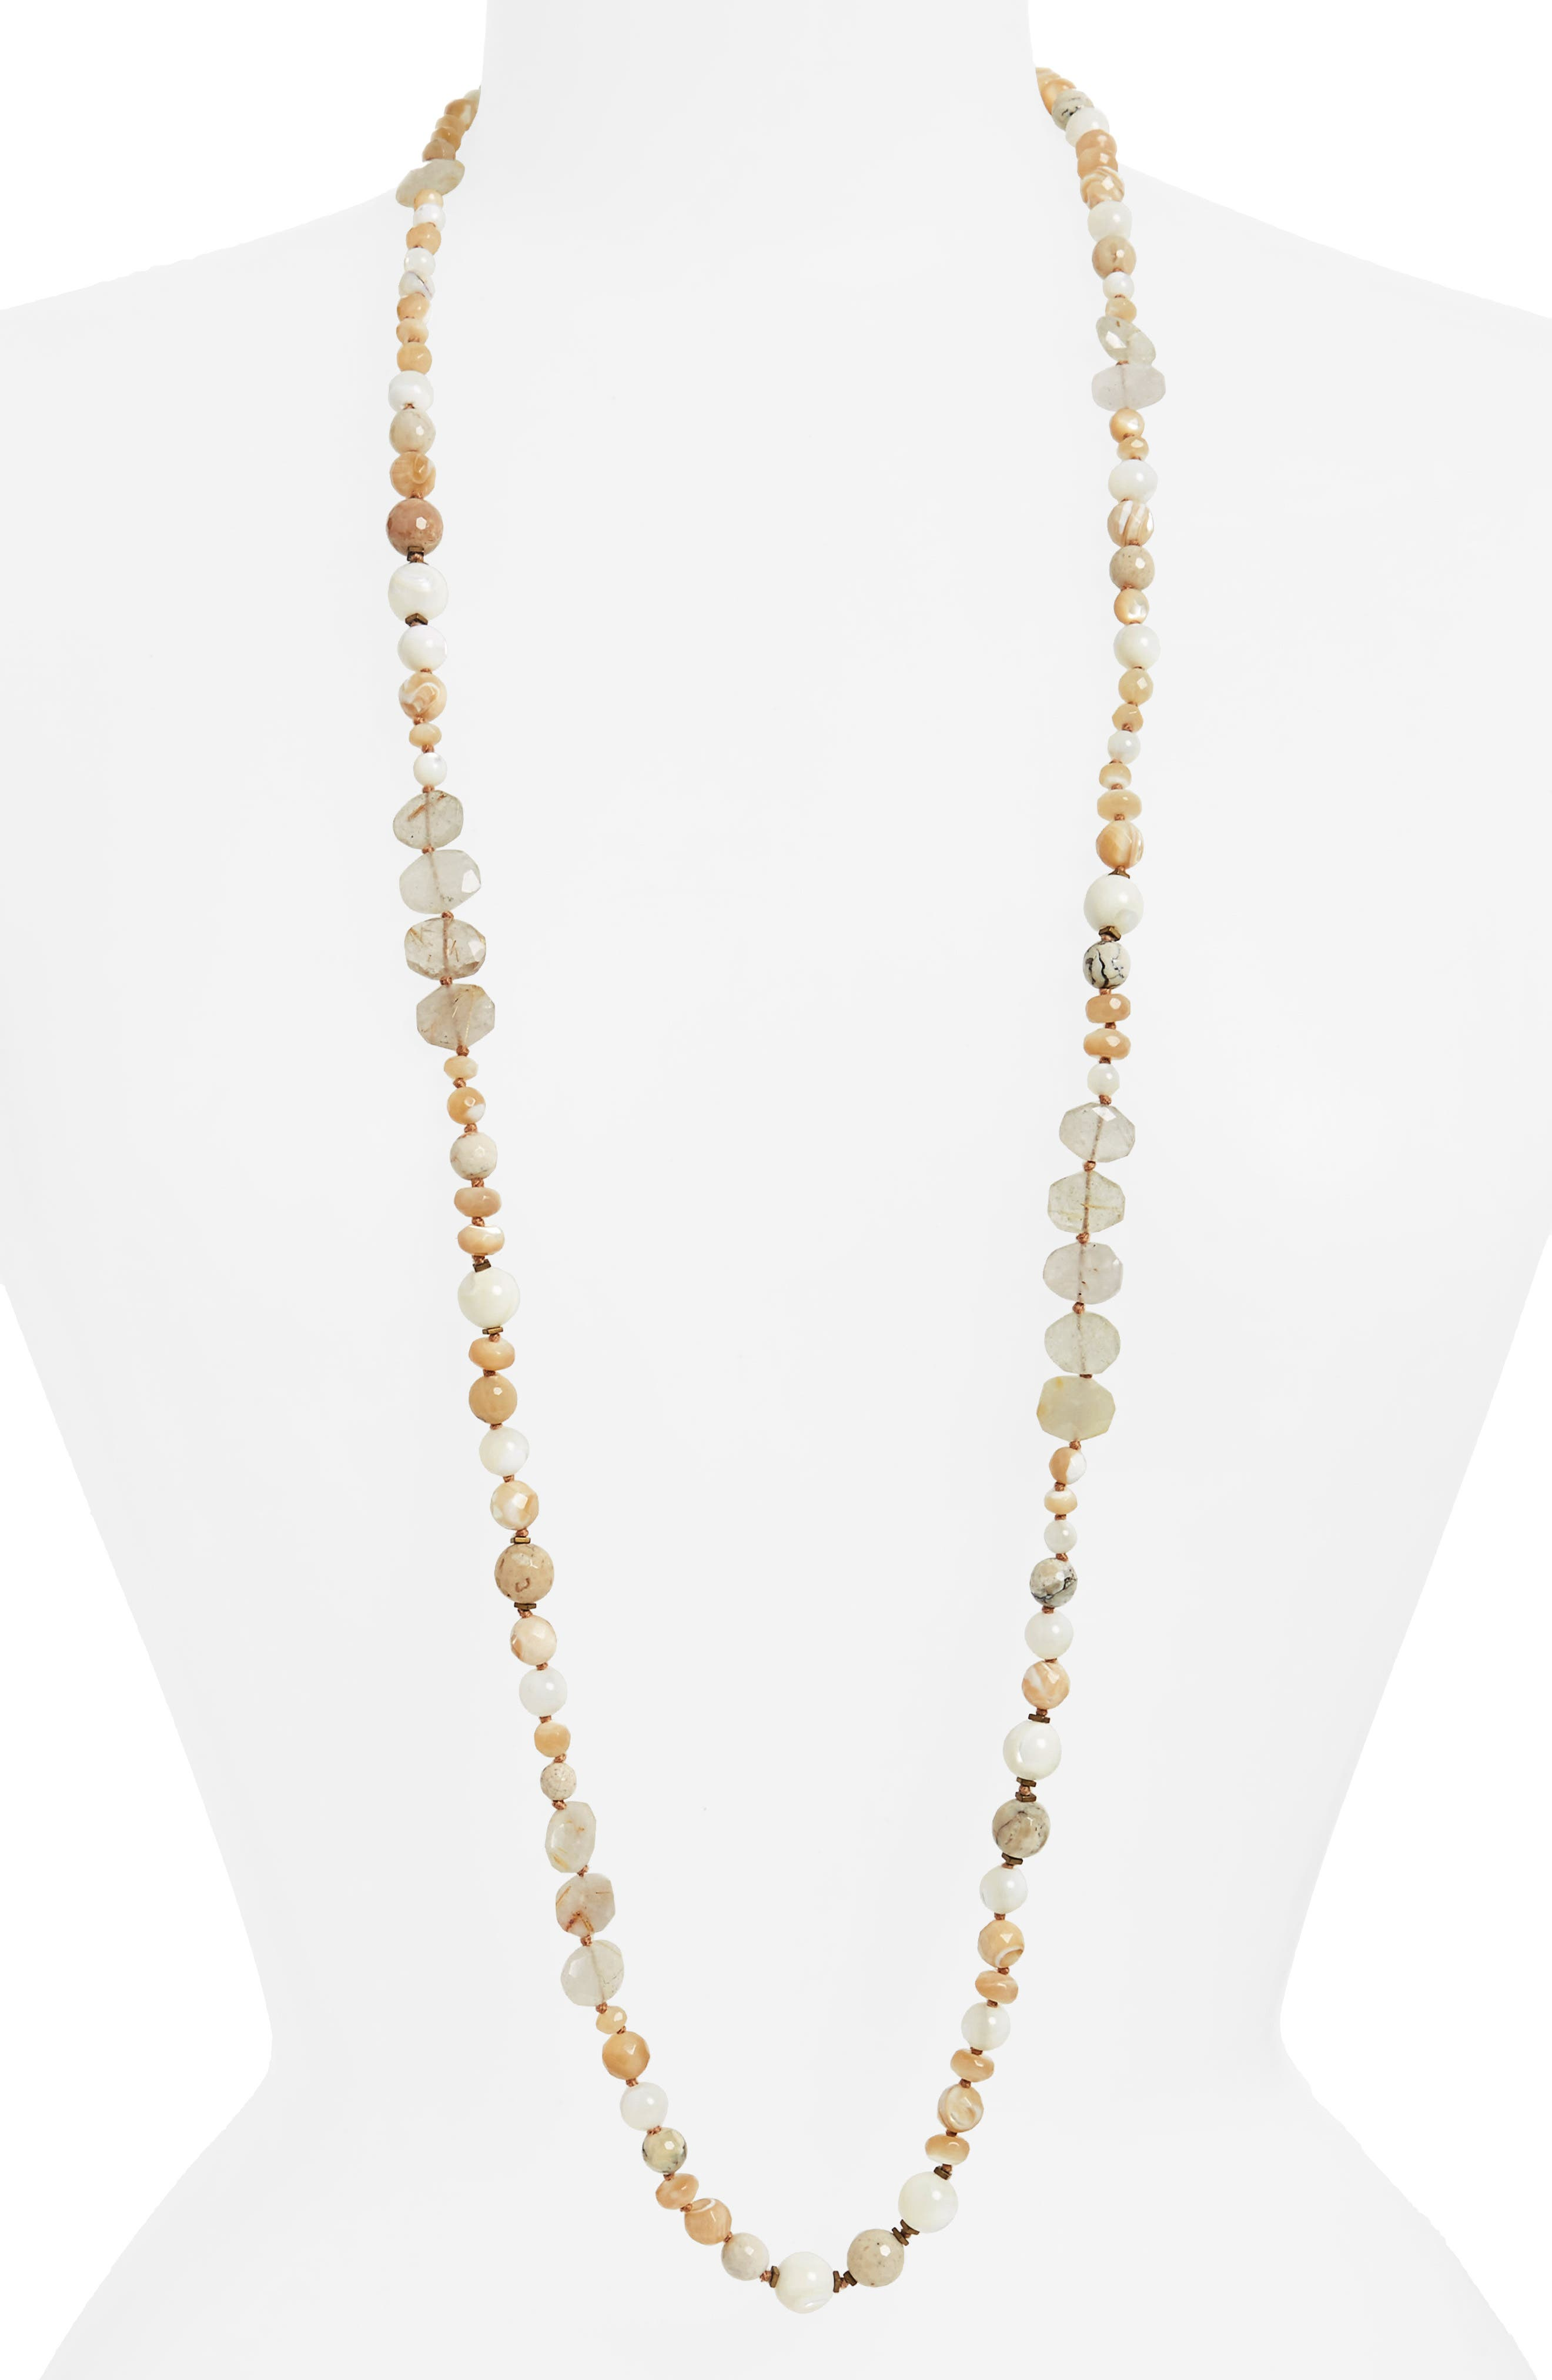 Semiprecious Stone Strand Necklace,                             Main thumbnail 1, color,                             100